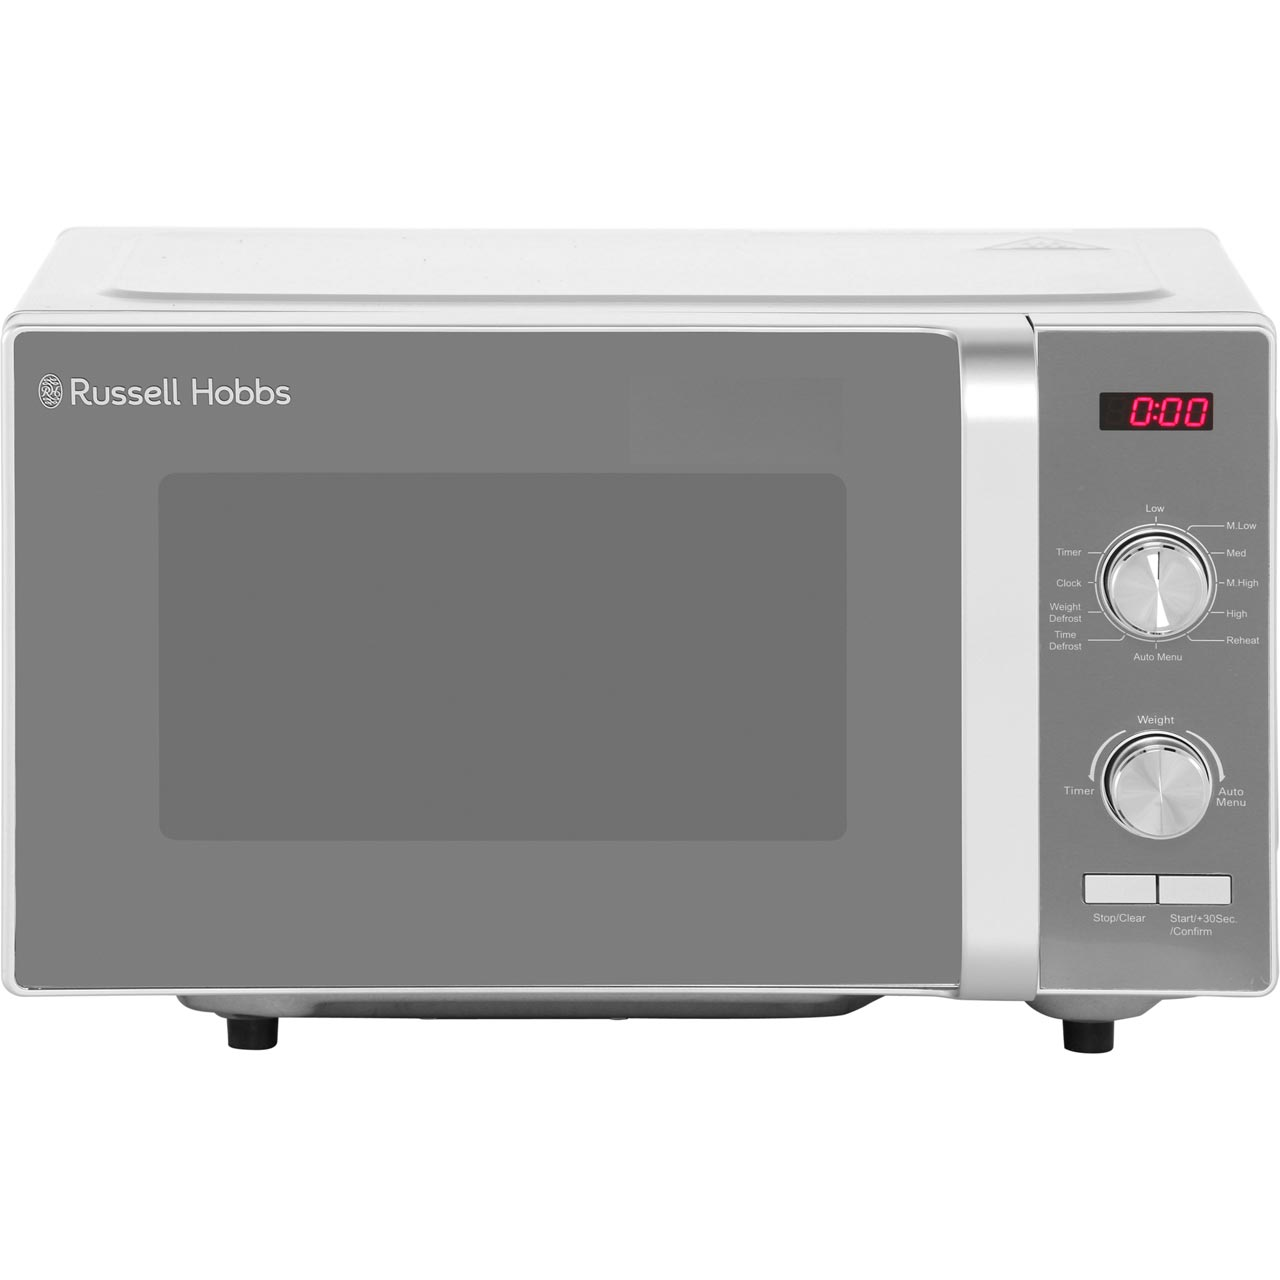 be10450e3733 ... Russell Hobbs RHFM2001S 19 Litre Microwave - Silver - RHFM2001S_SI - 1  ...